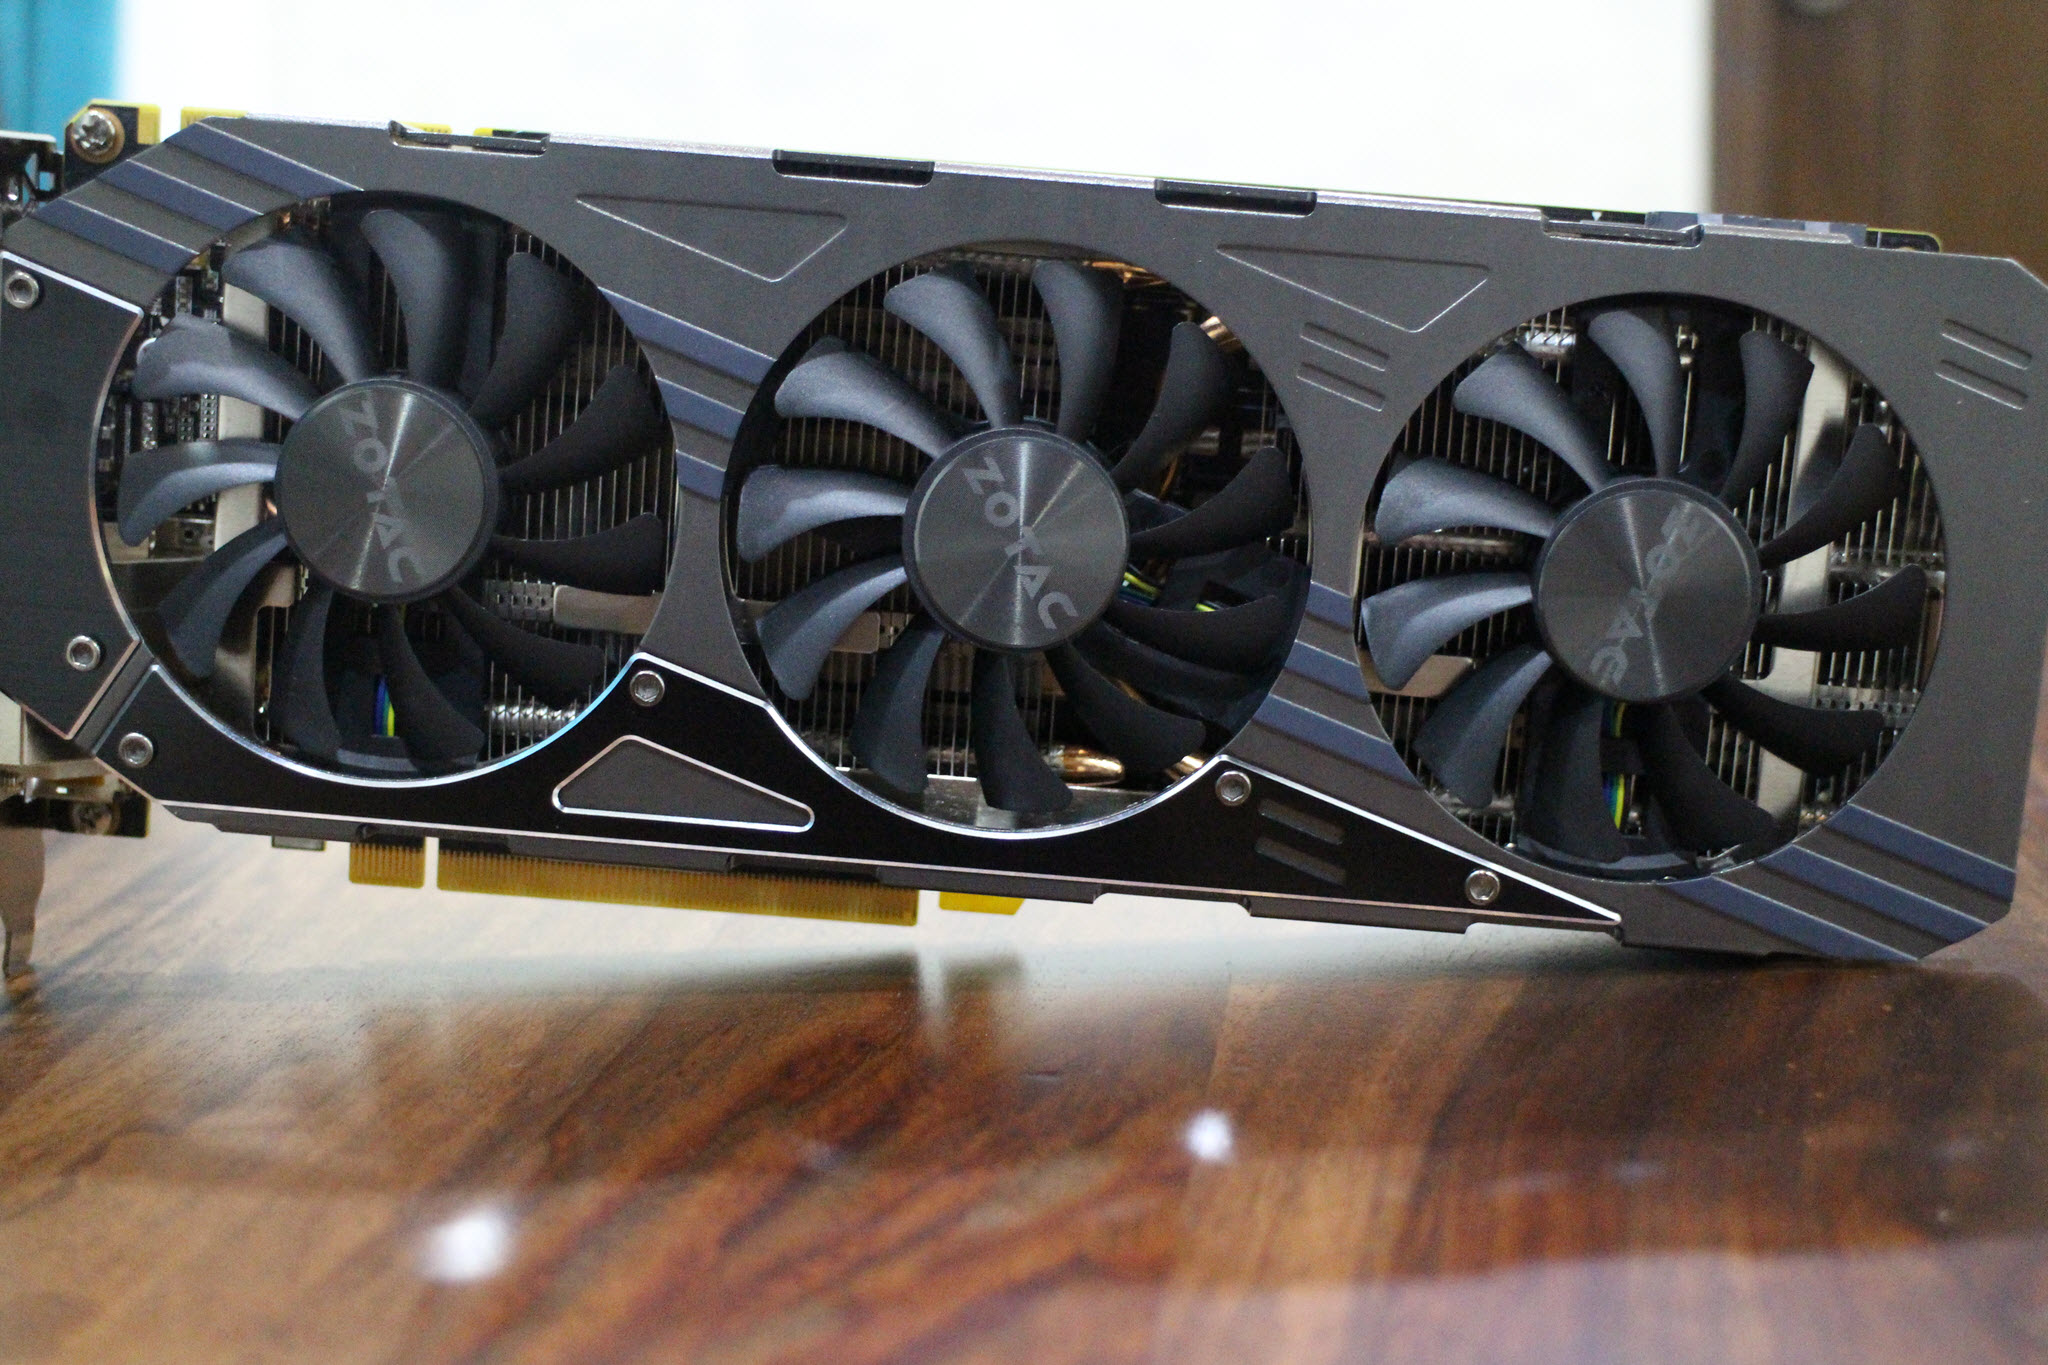 Zotac gtx 970 amp! Omega core edition graphics card review.